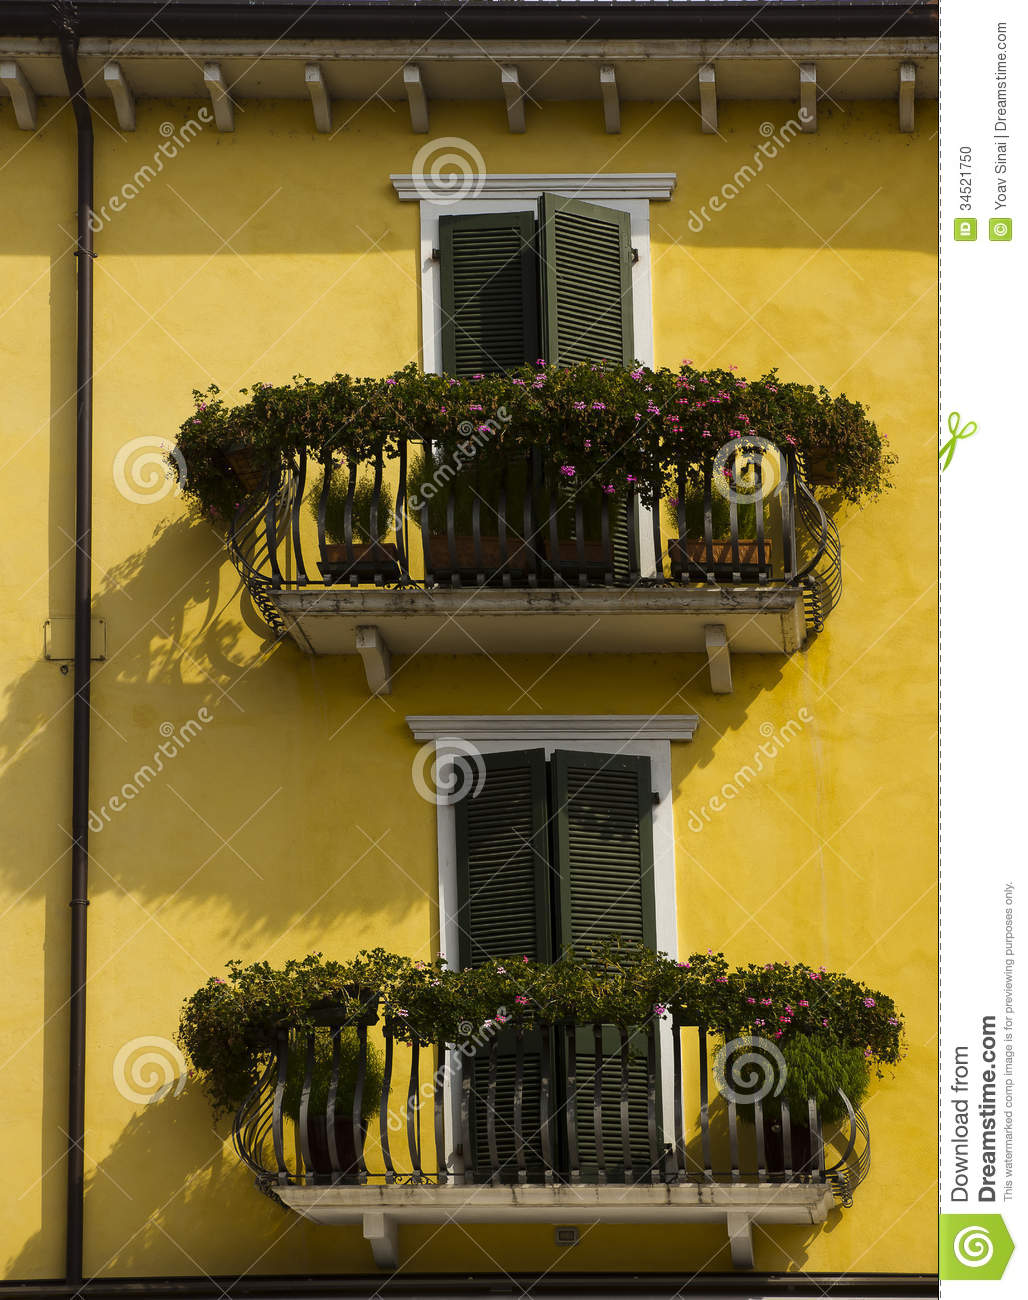 Yellow House Green Shutters Decorated Balconies Stock Photo - Image ...